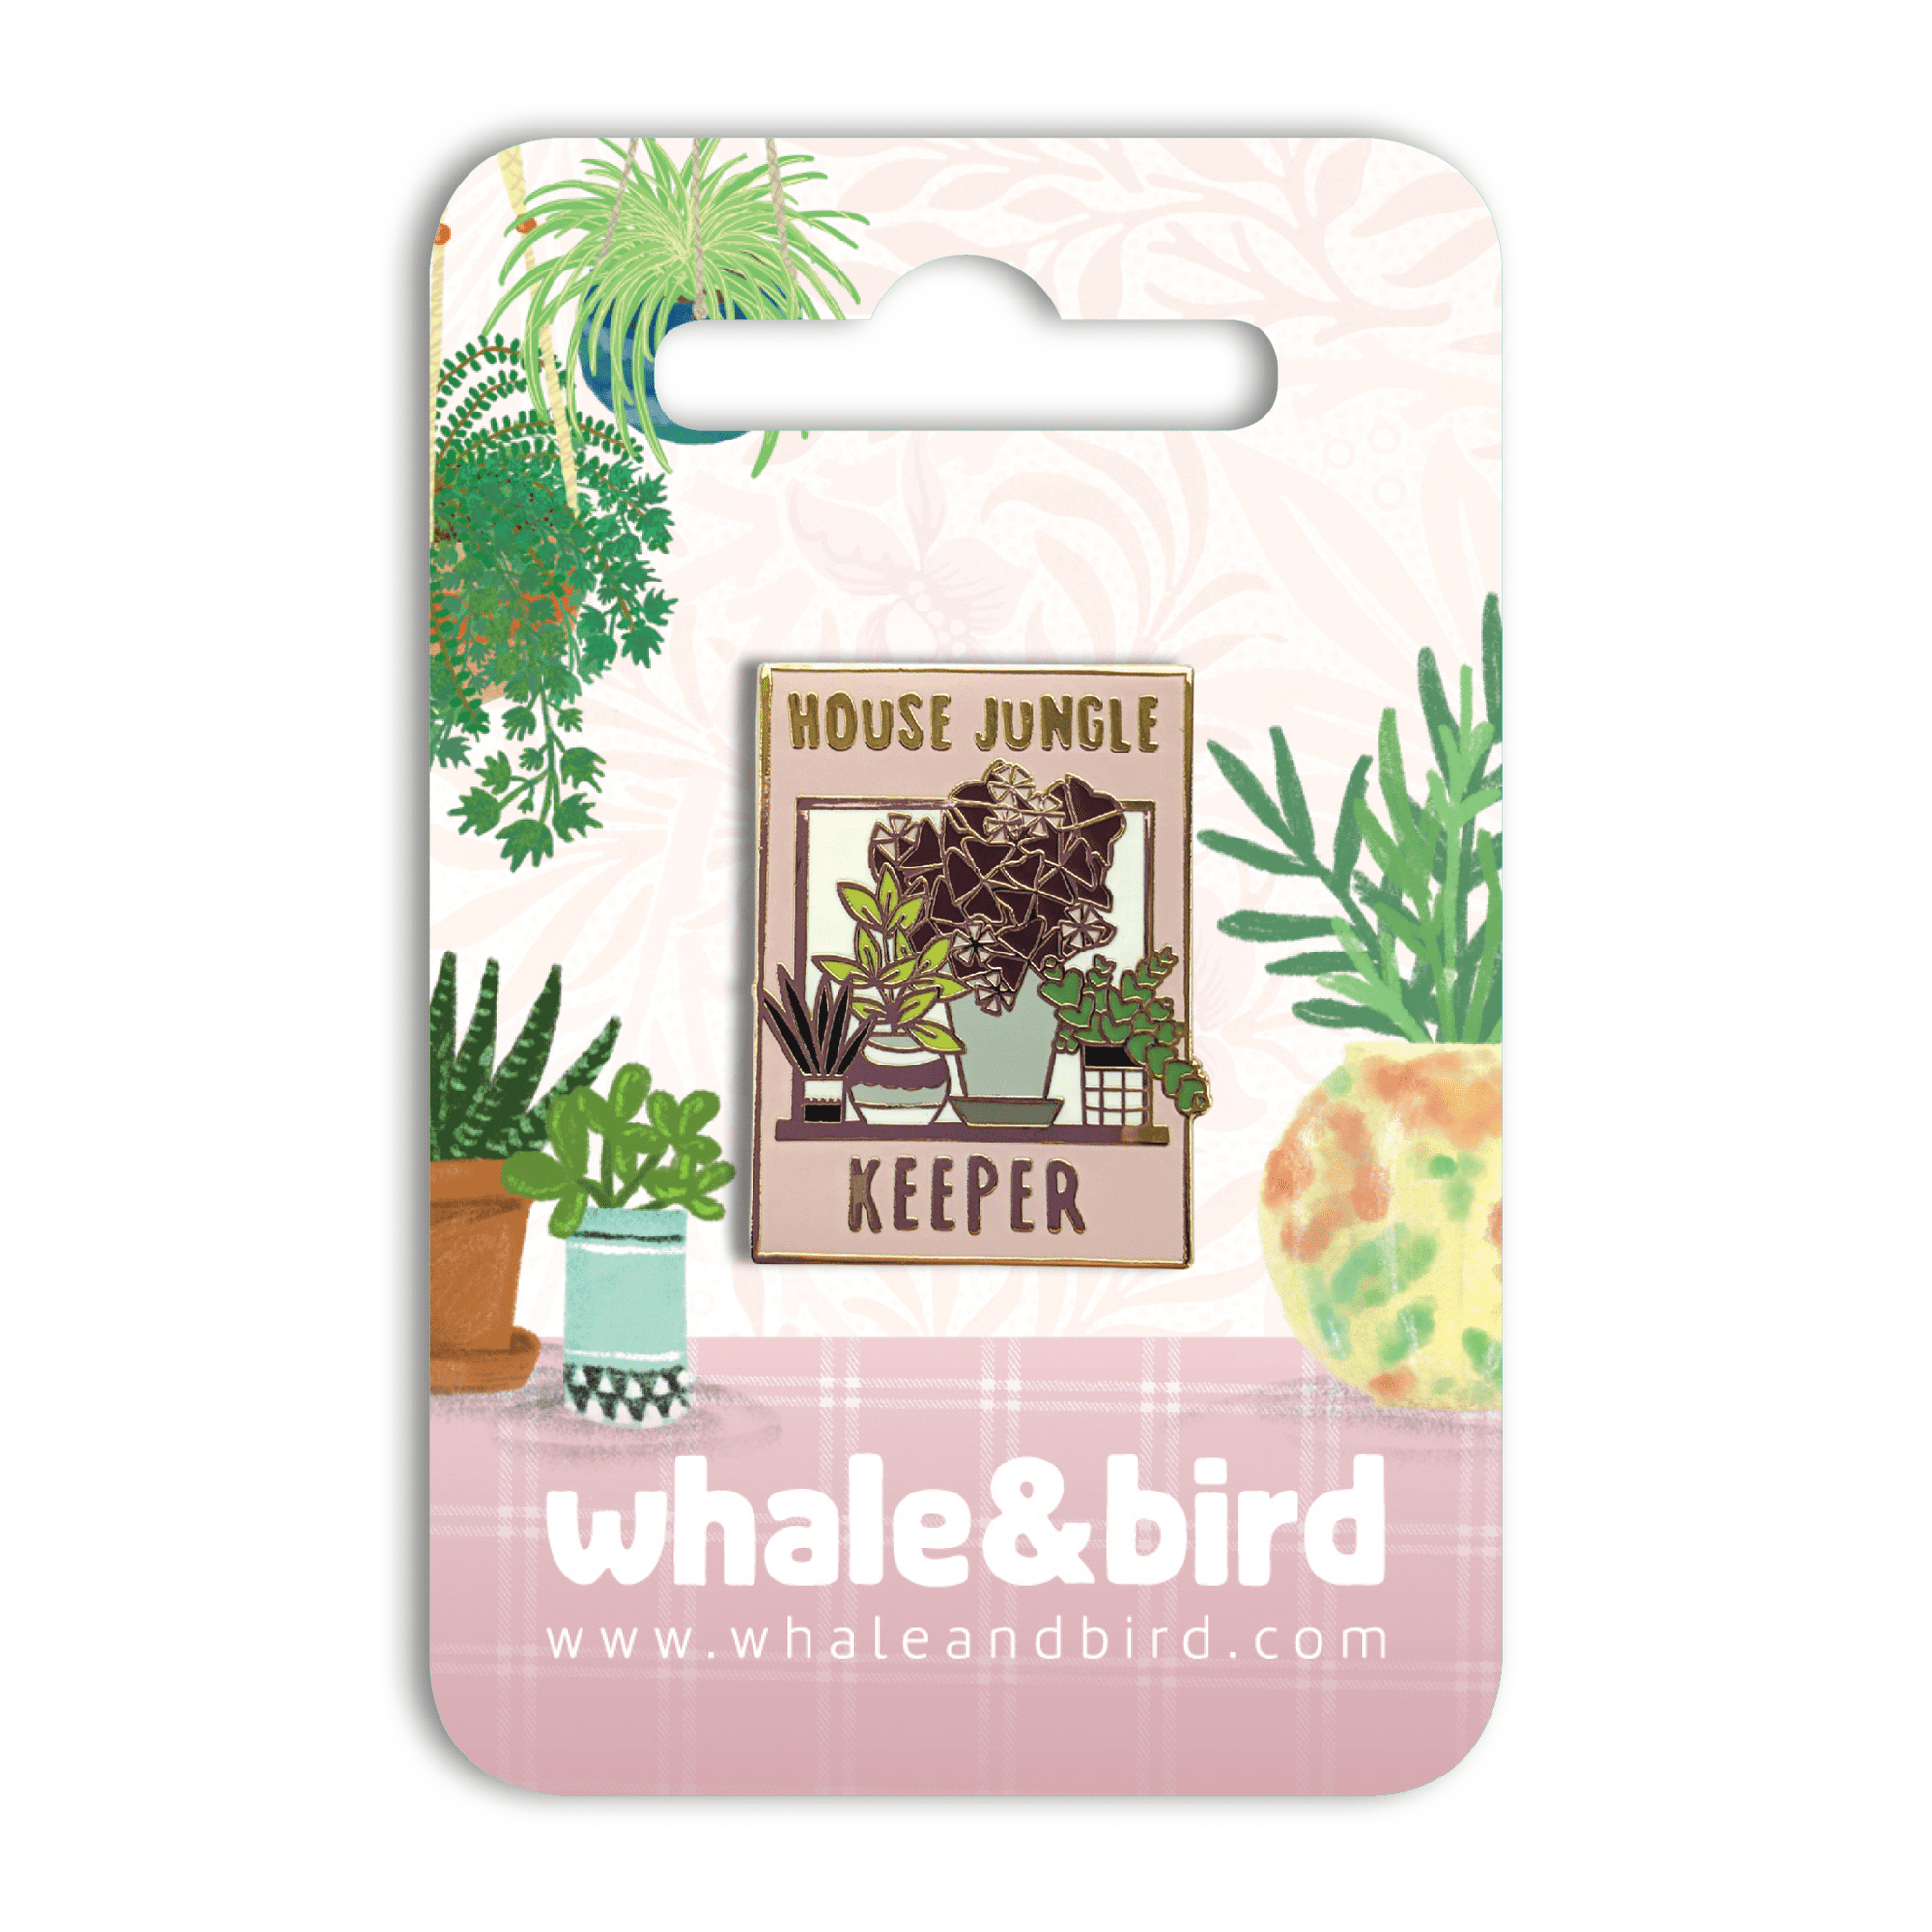 House Jungle Keeper Hard Enamel Pin by Mary Joy Harris - Whale and Bird